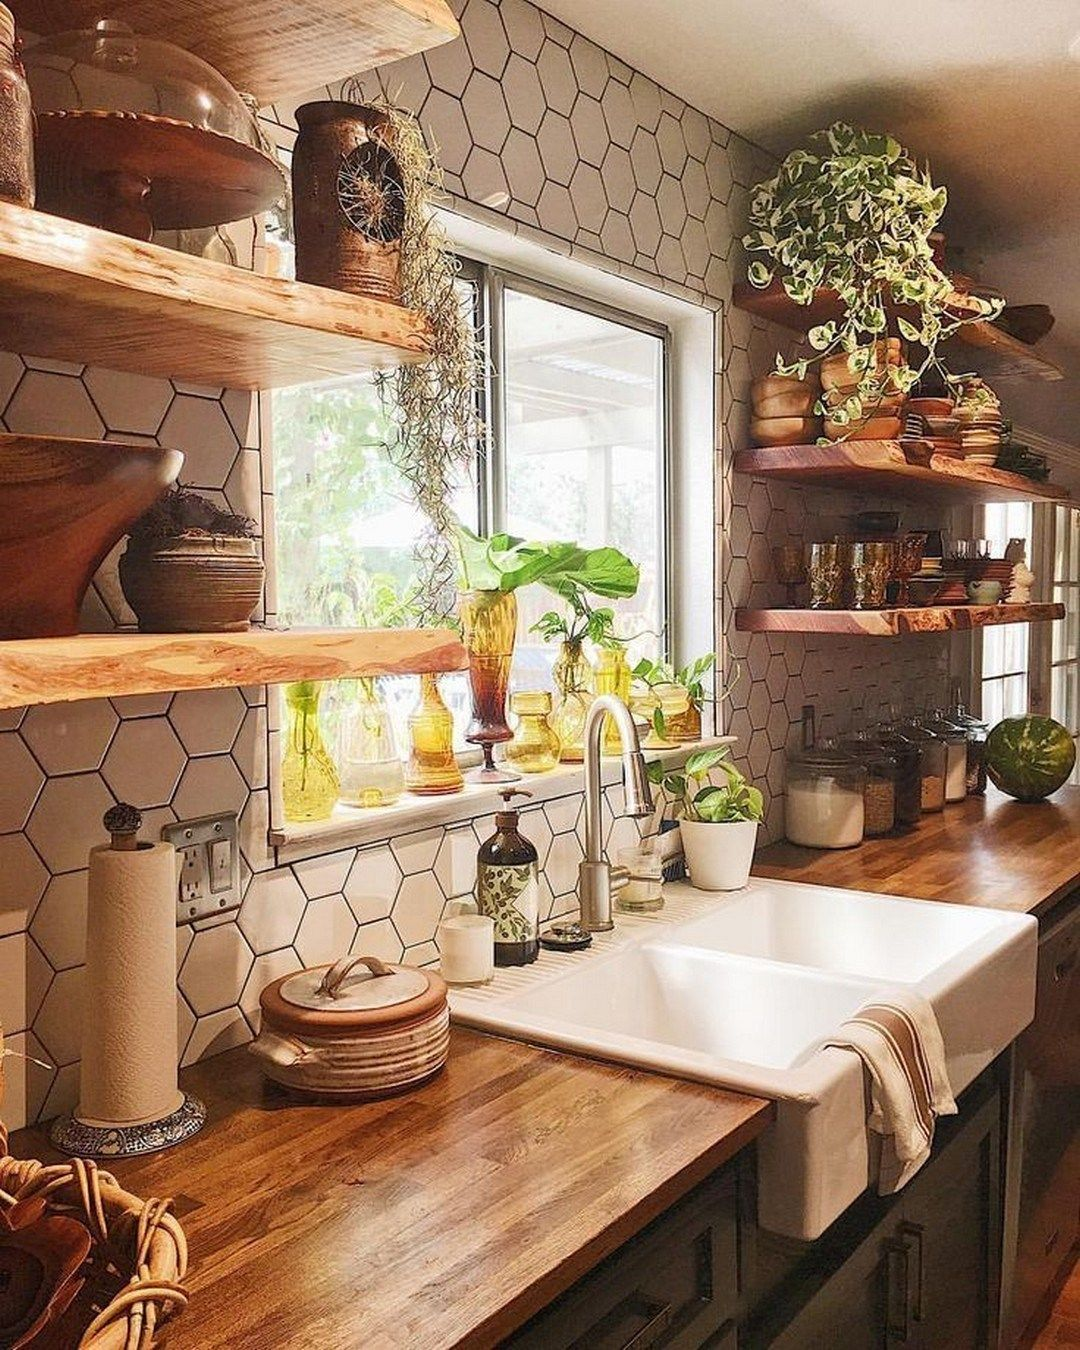 25 farmhouse kitchen design ideas on a low budget page 11 of 25 best liv in 2020 on farmhouse kitchen on a budget id=51999